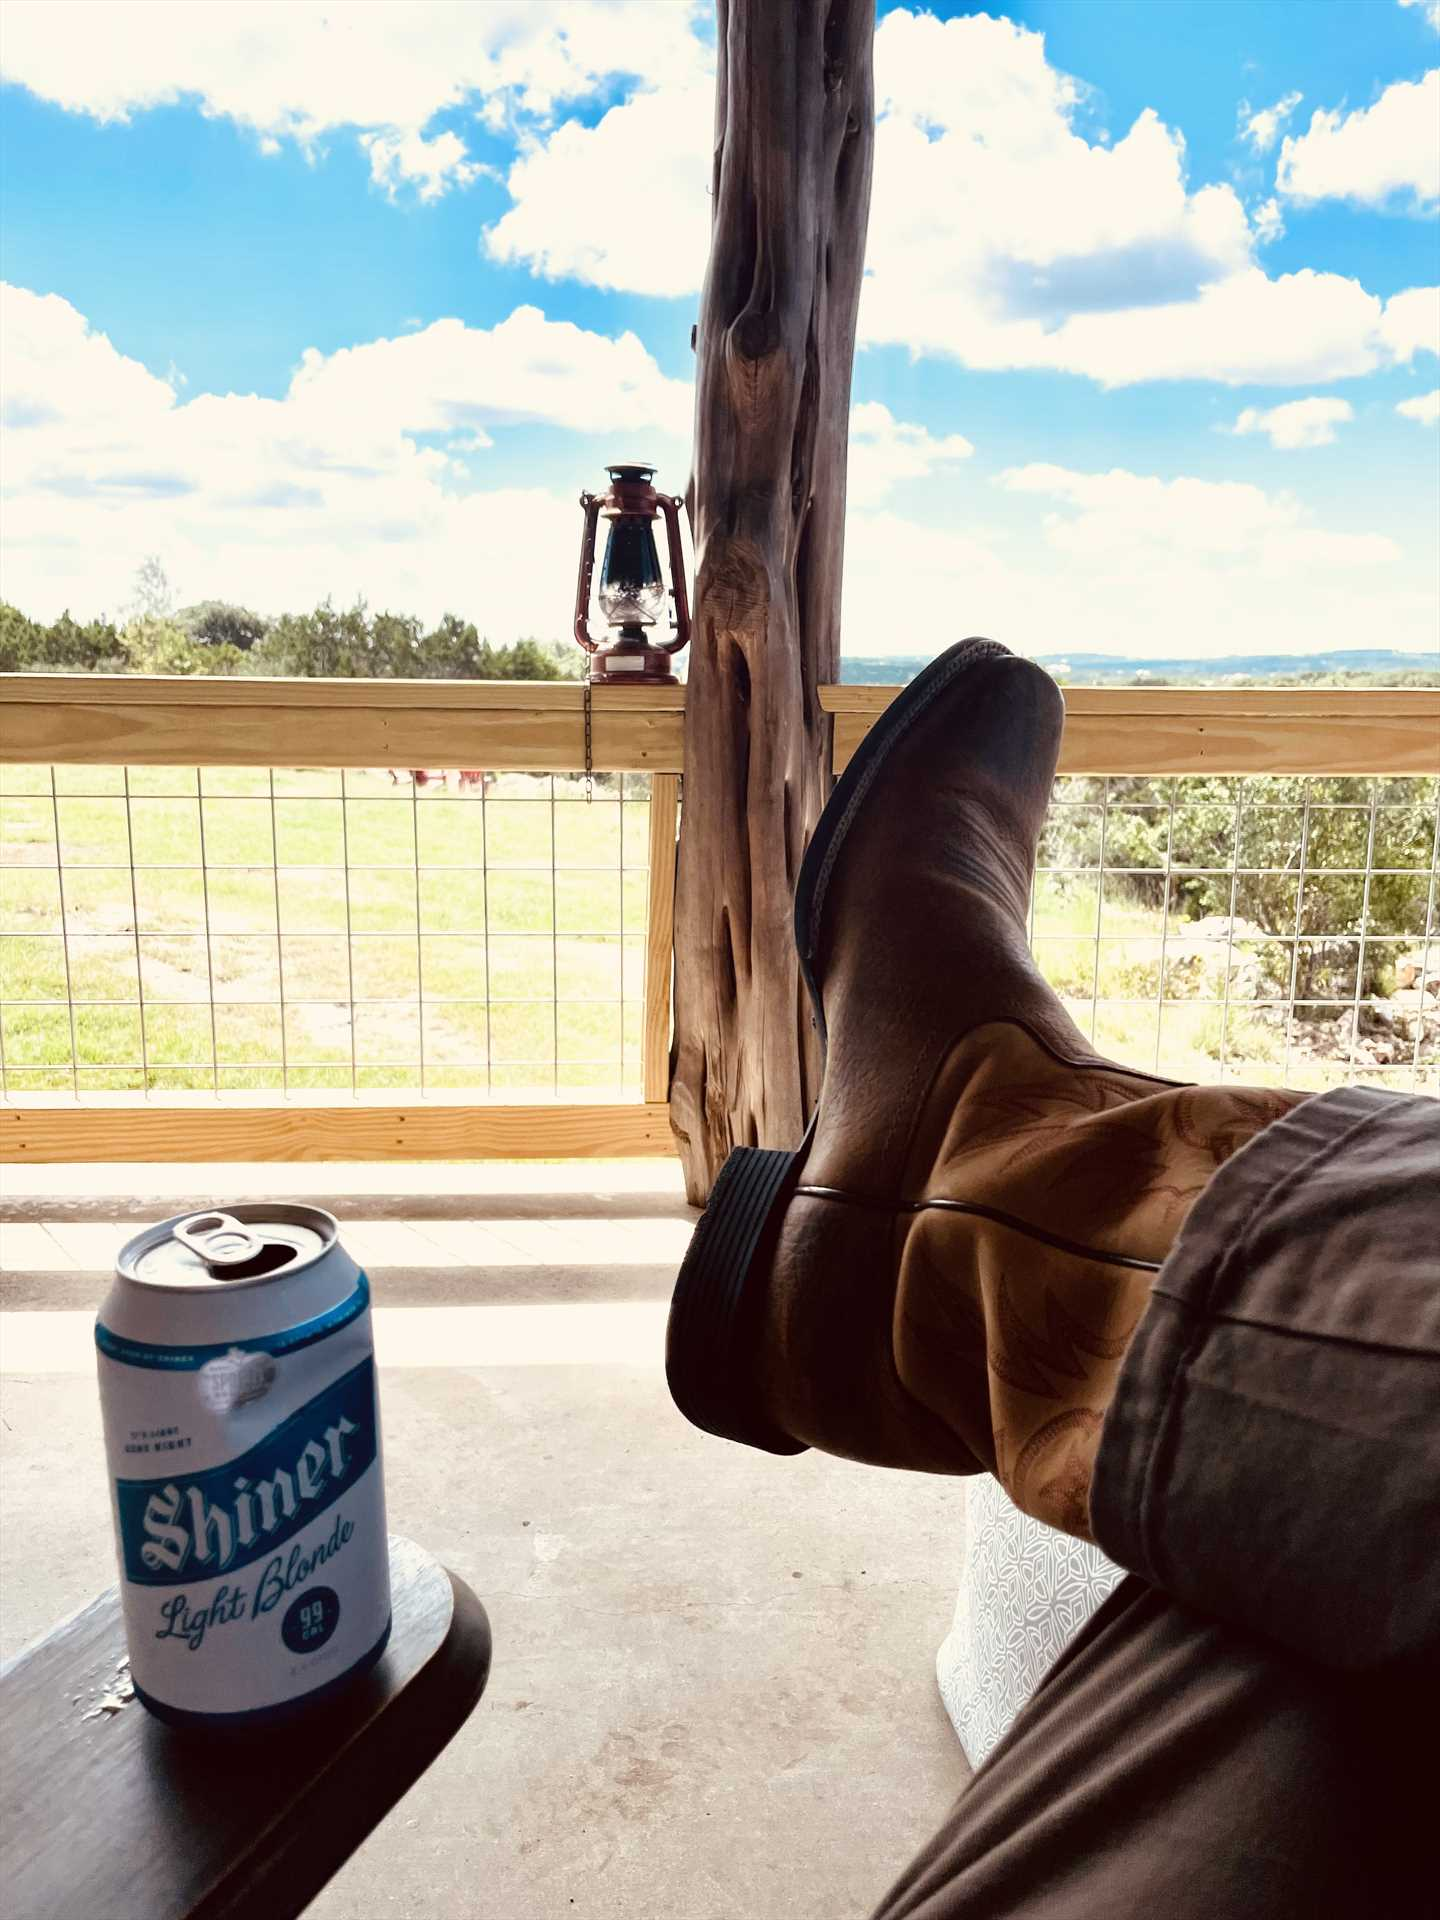 A true Texas Hill Country experience